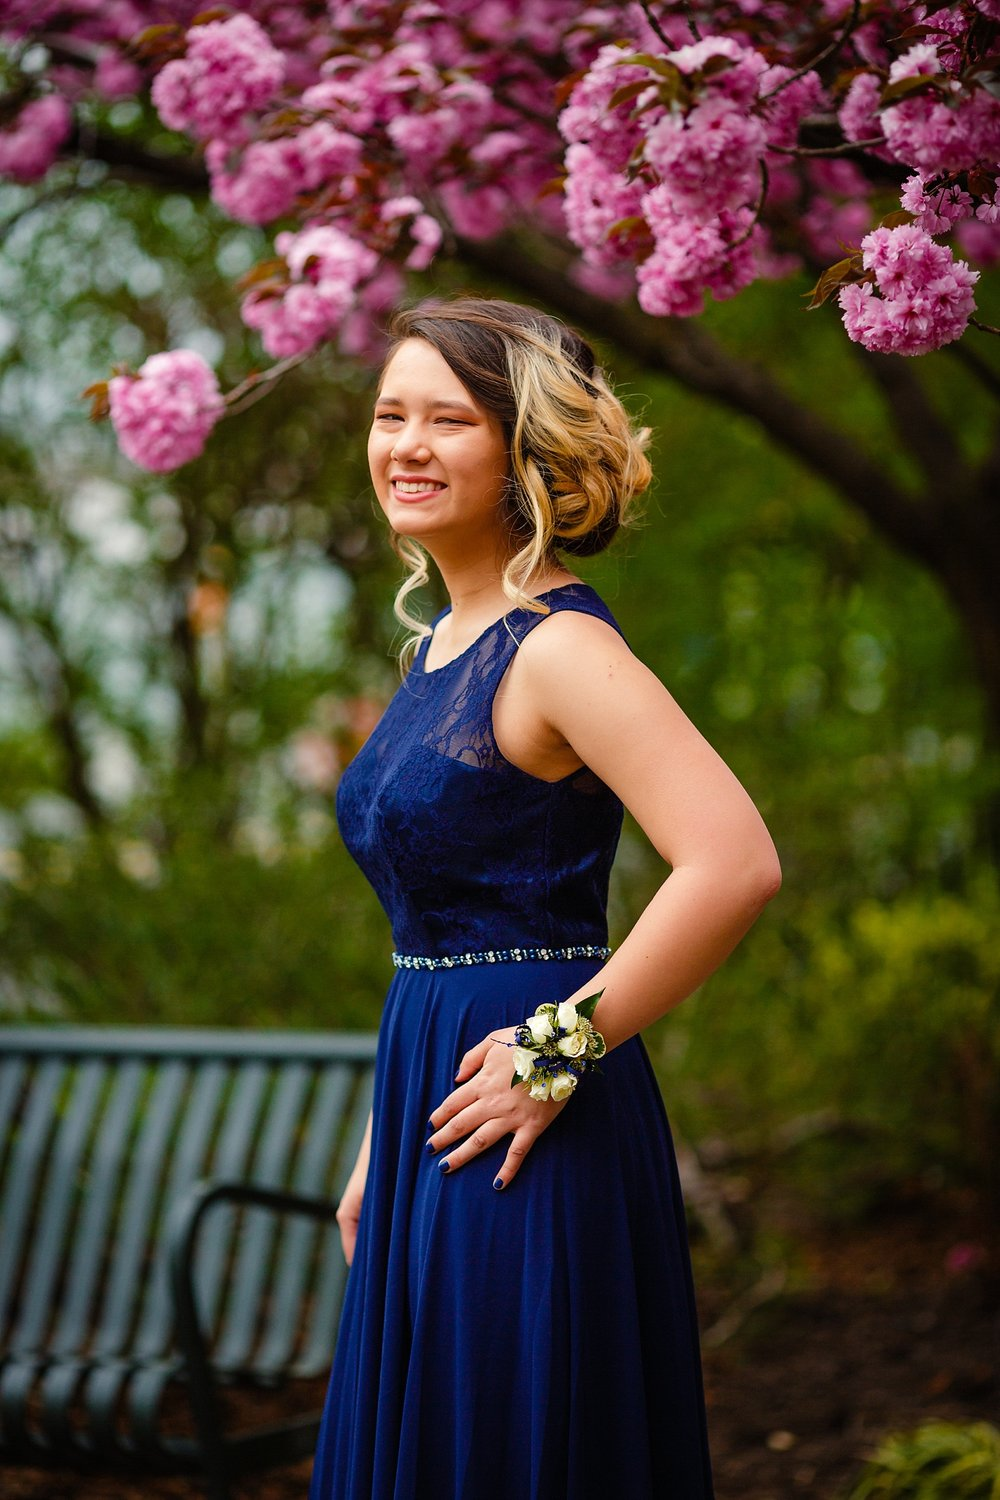 Wilson High School Prom Photographer Berks County Wyomissing Pennsylvania Stoudtburg Village